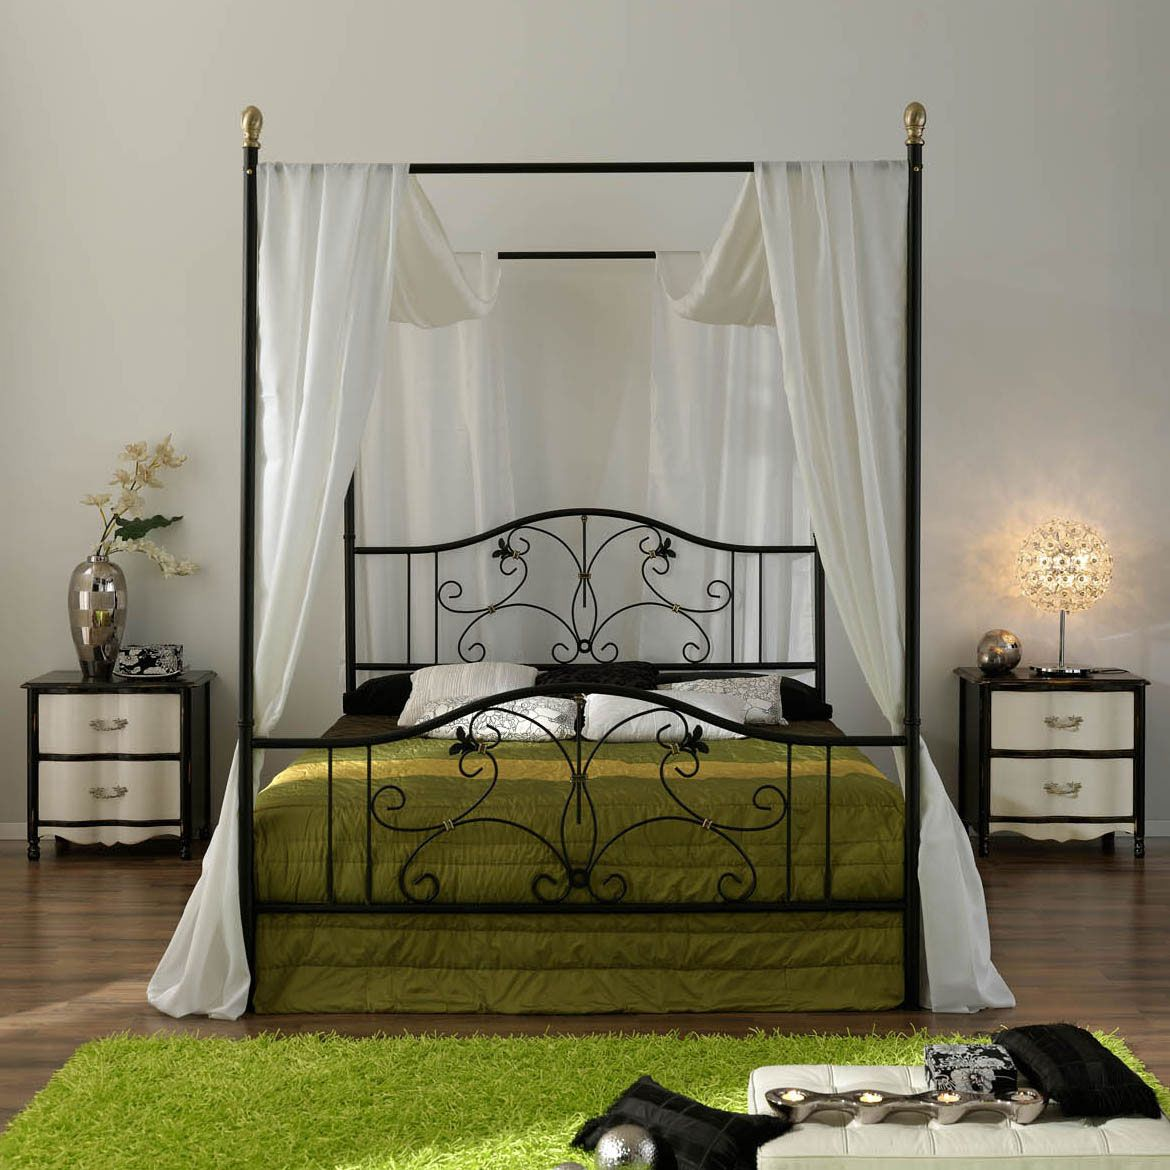 Elegant Iron Canopy Bed Frame Iron canopy bed, Metal